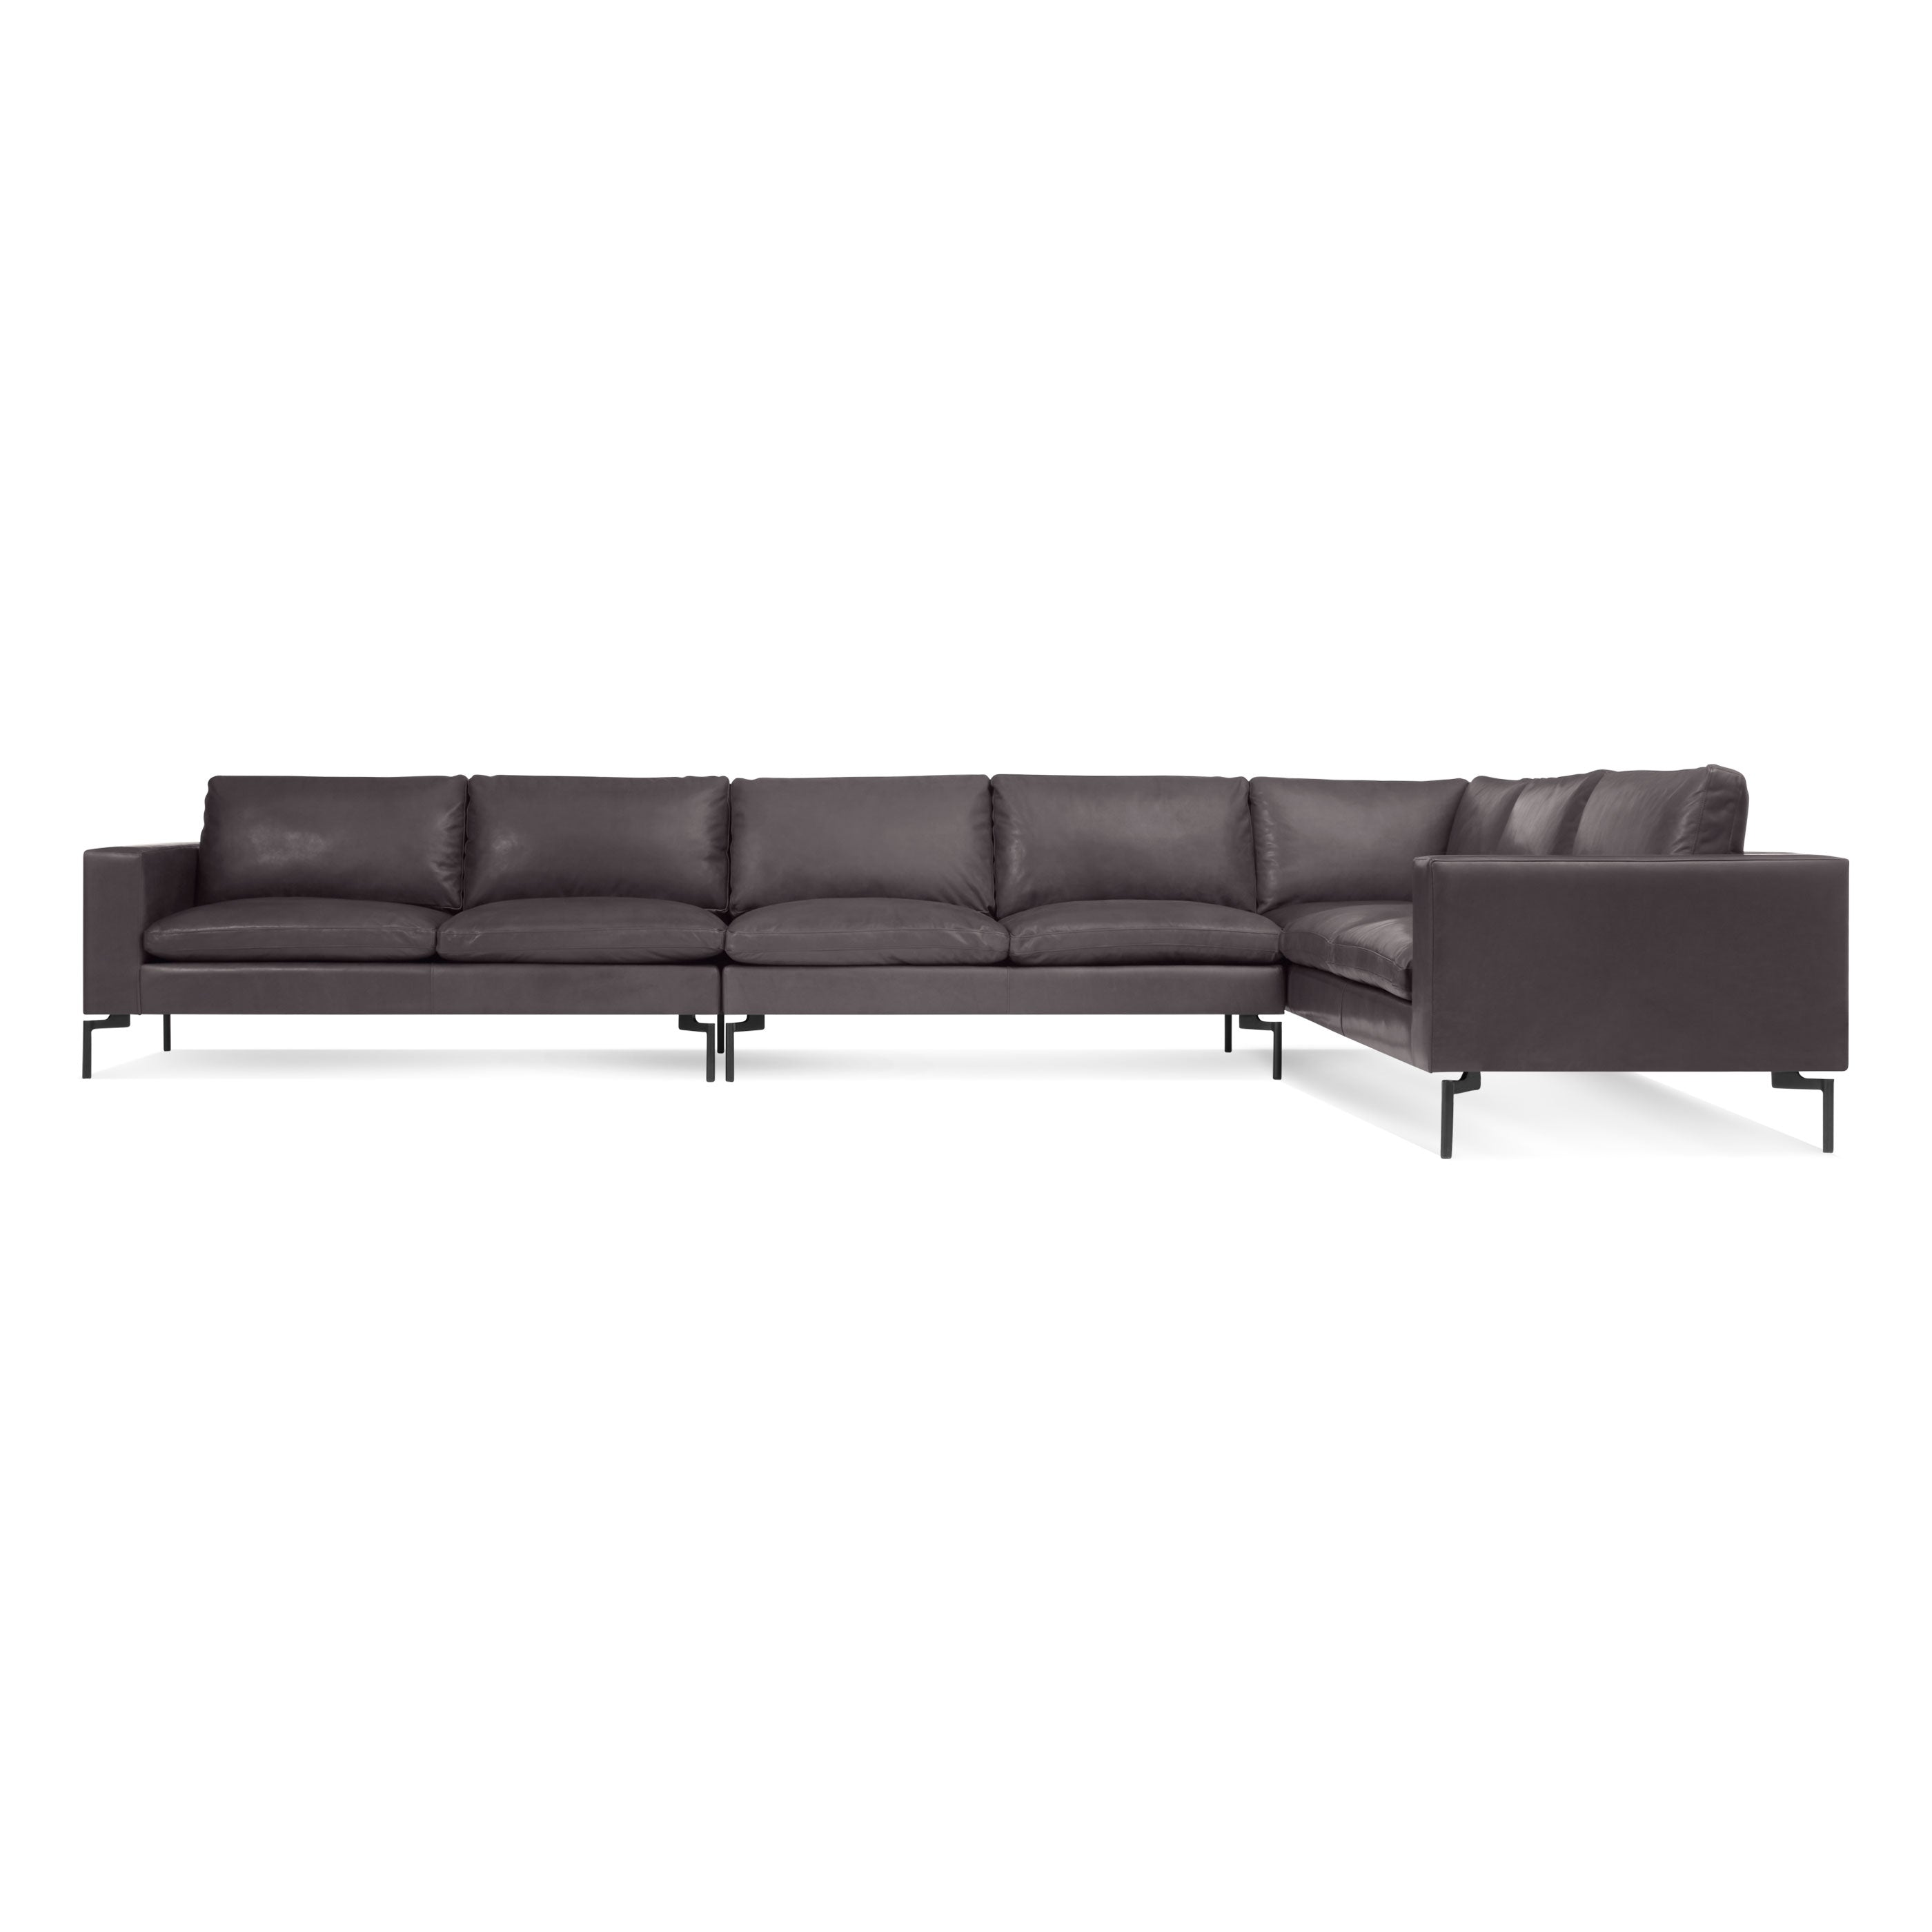 Blu Dot New Standard Right Leather Sectional Sofa Large